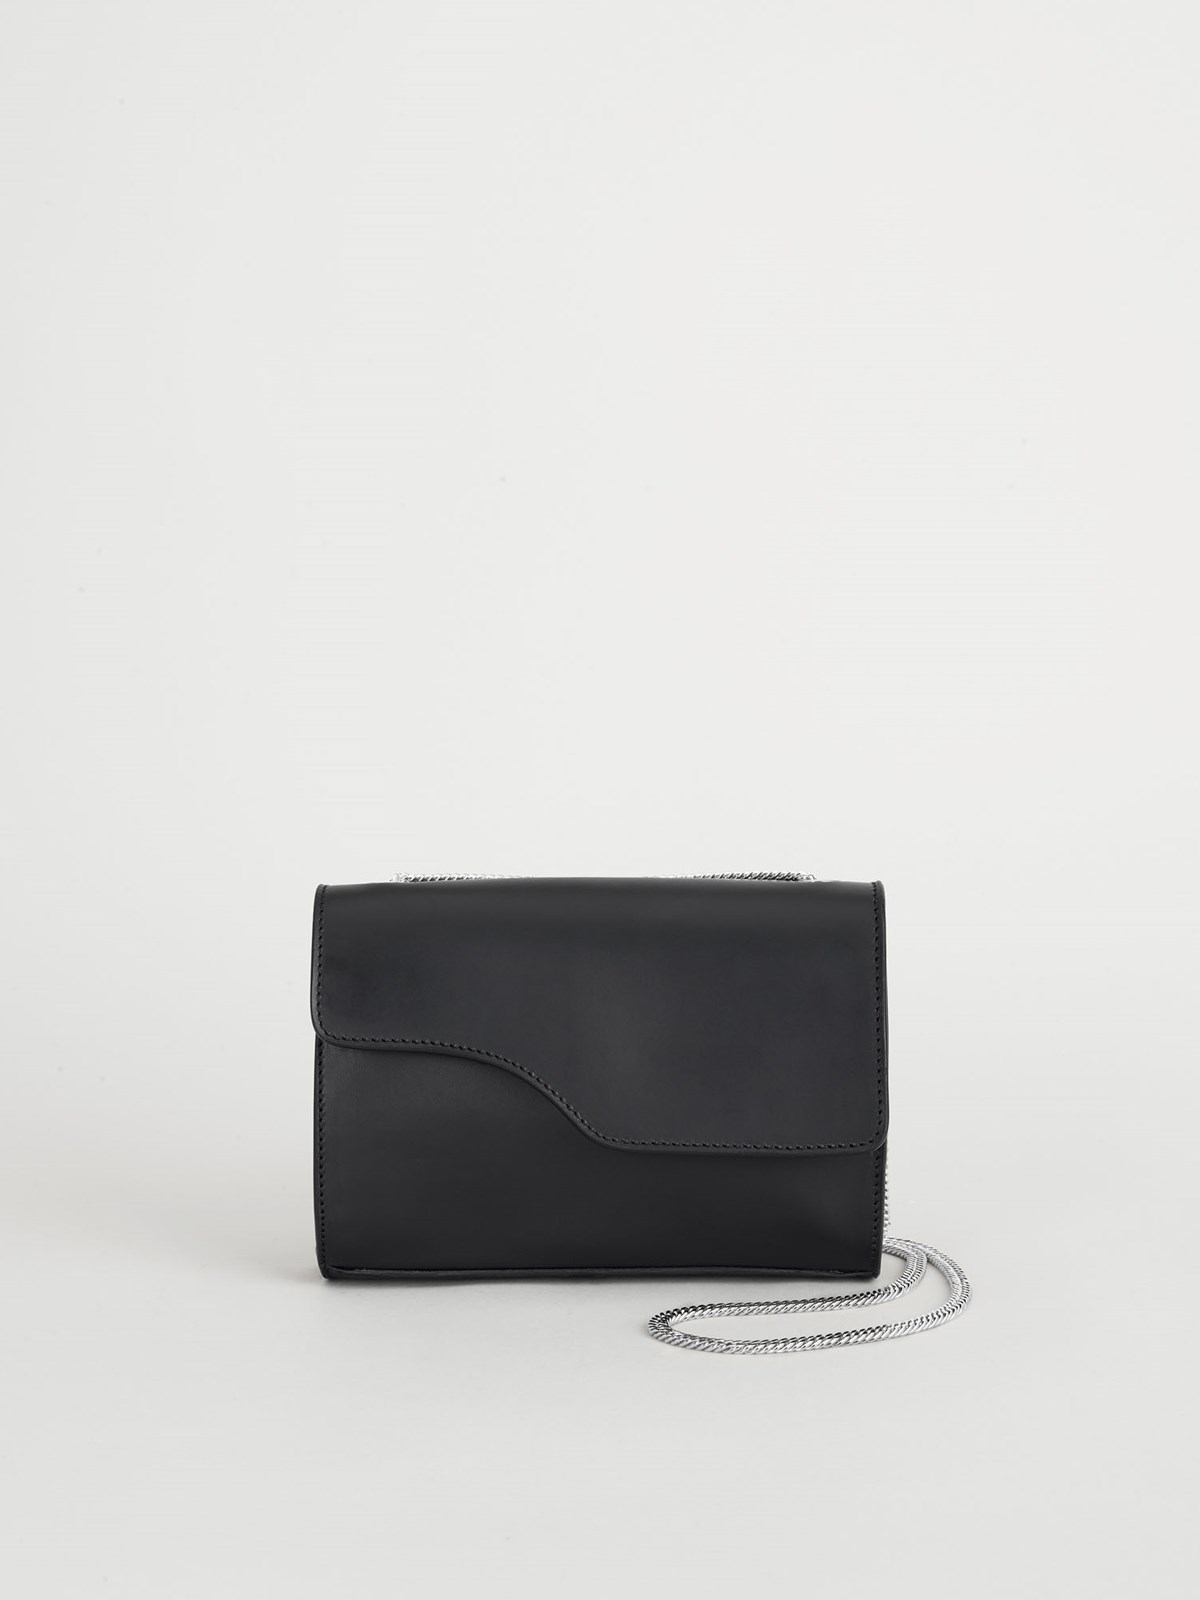 Pomarance Black Crossbody bag